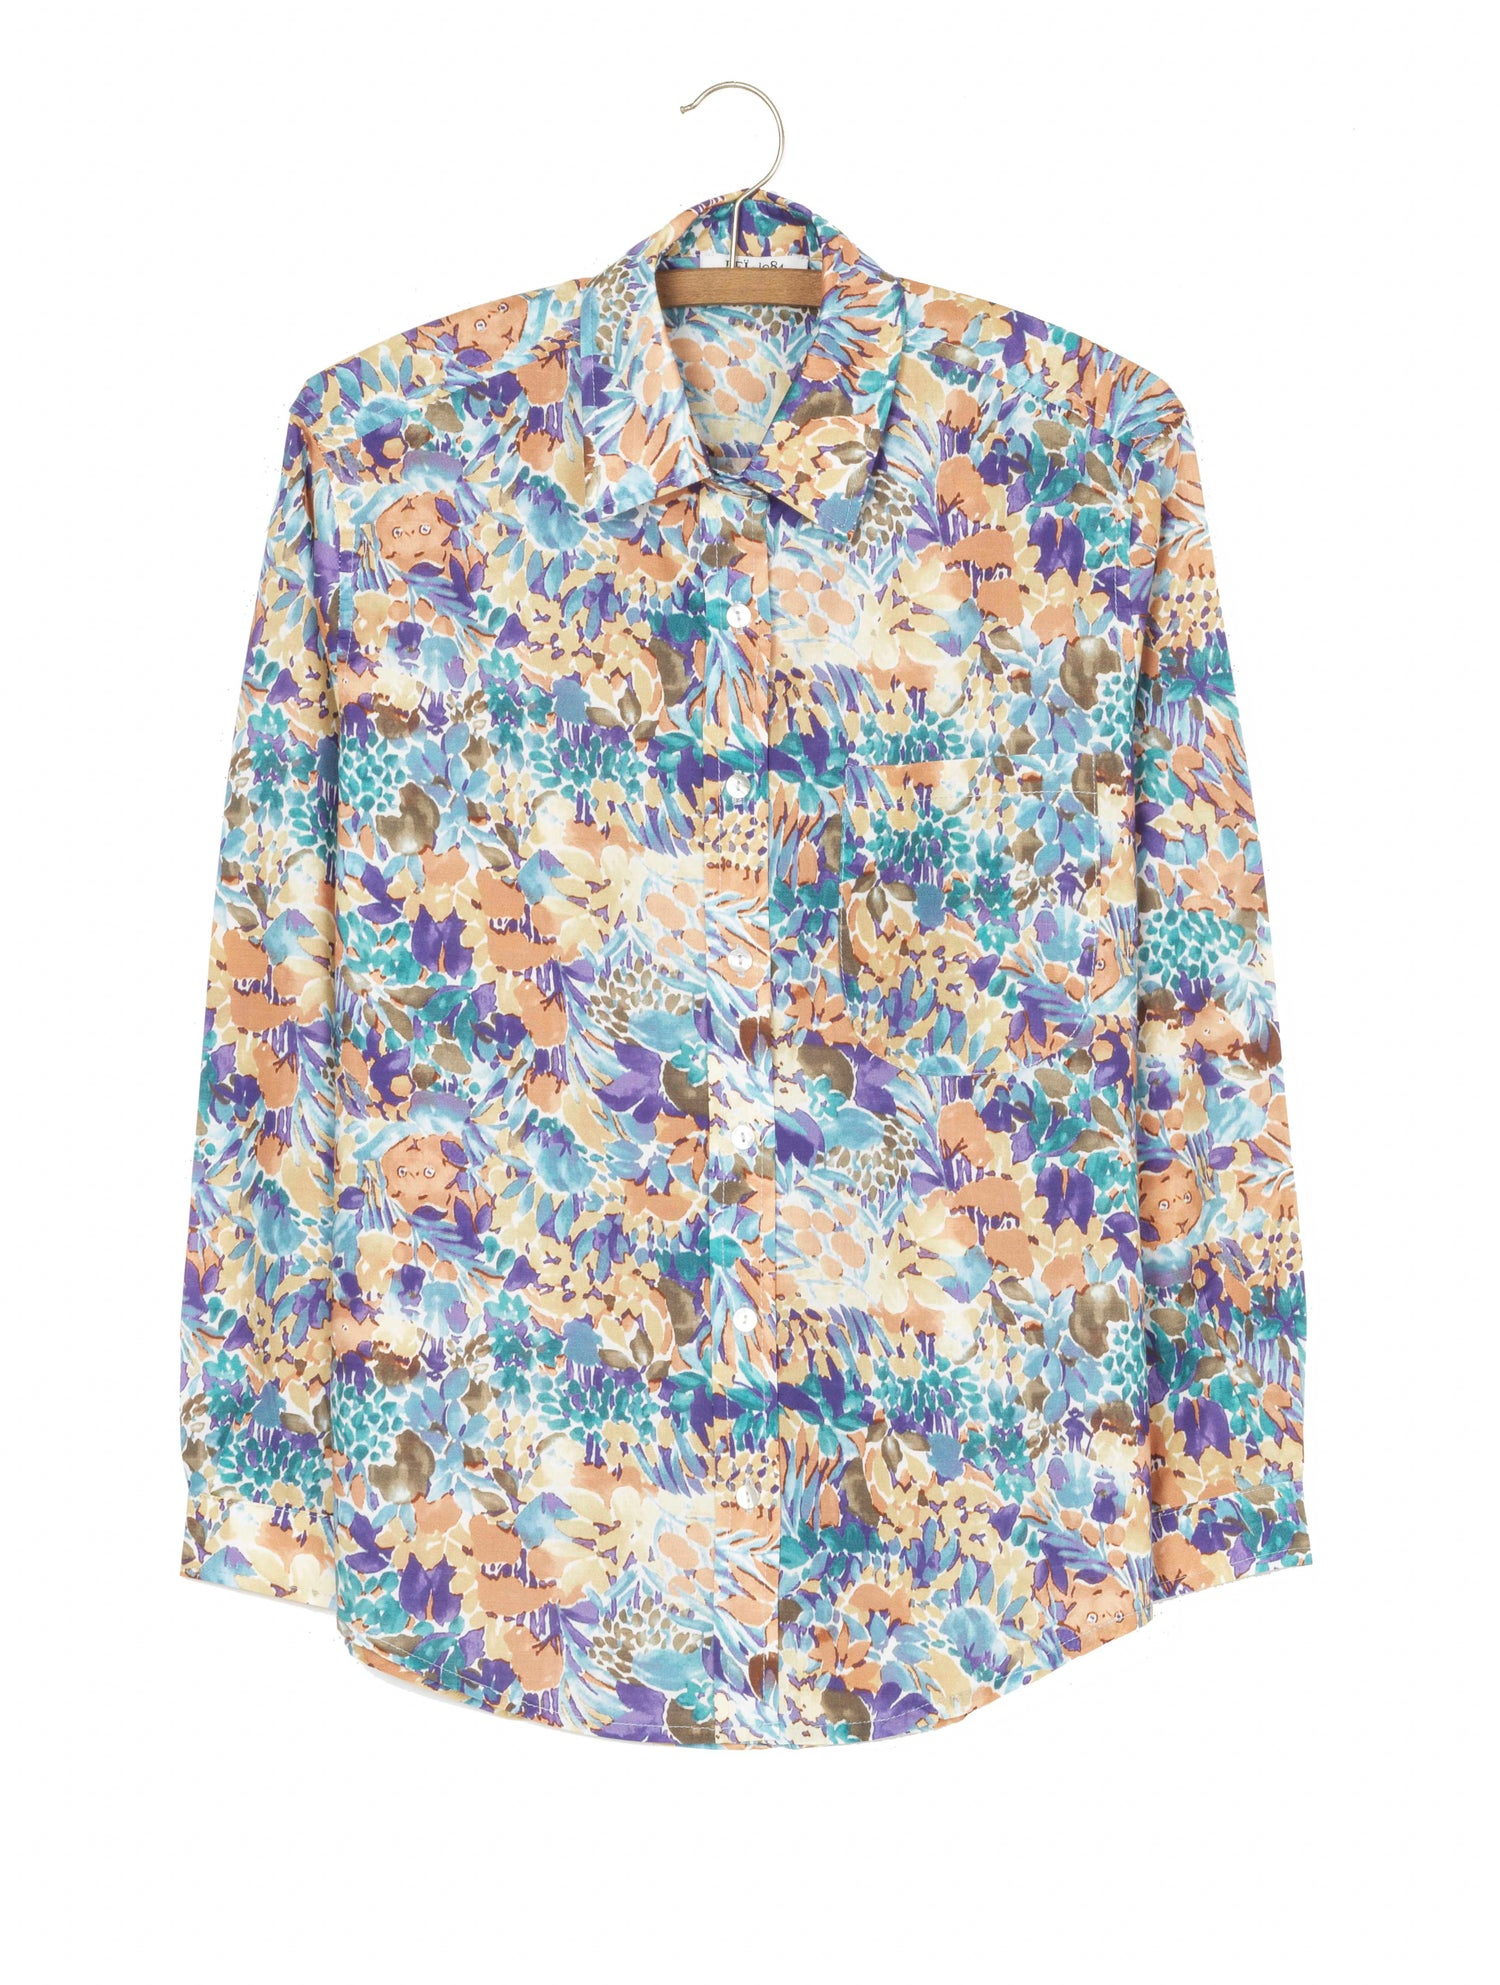 Image of Chemise LAVANDE imprimé jungle 115€ -60%